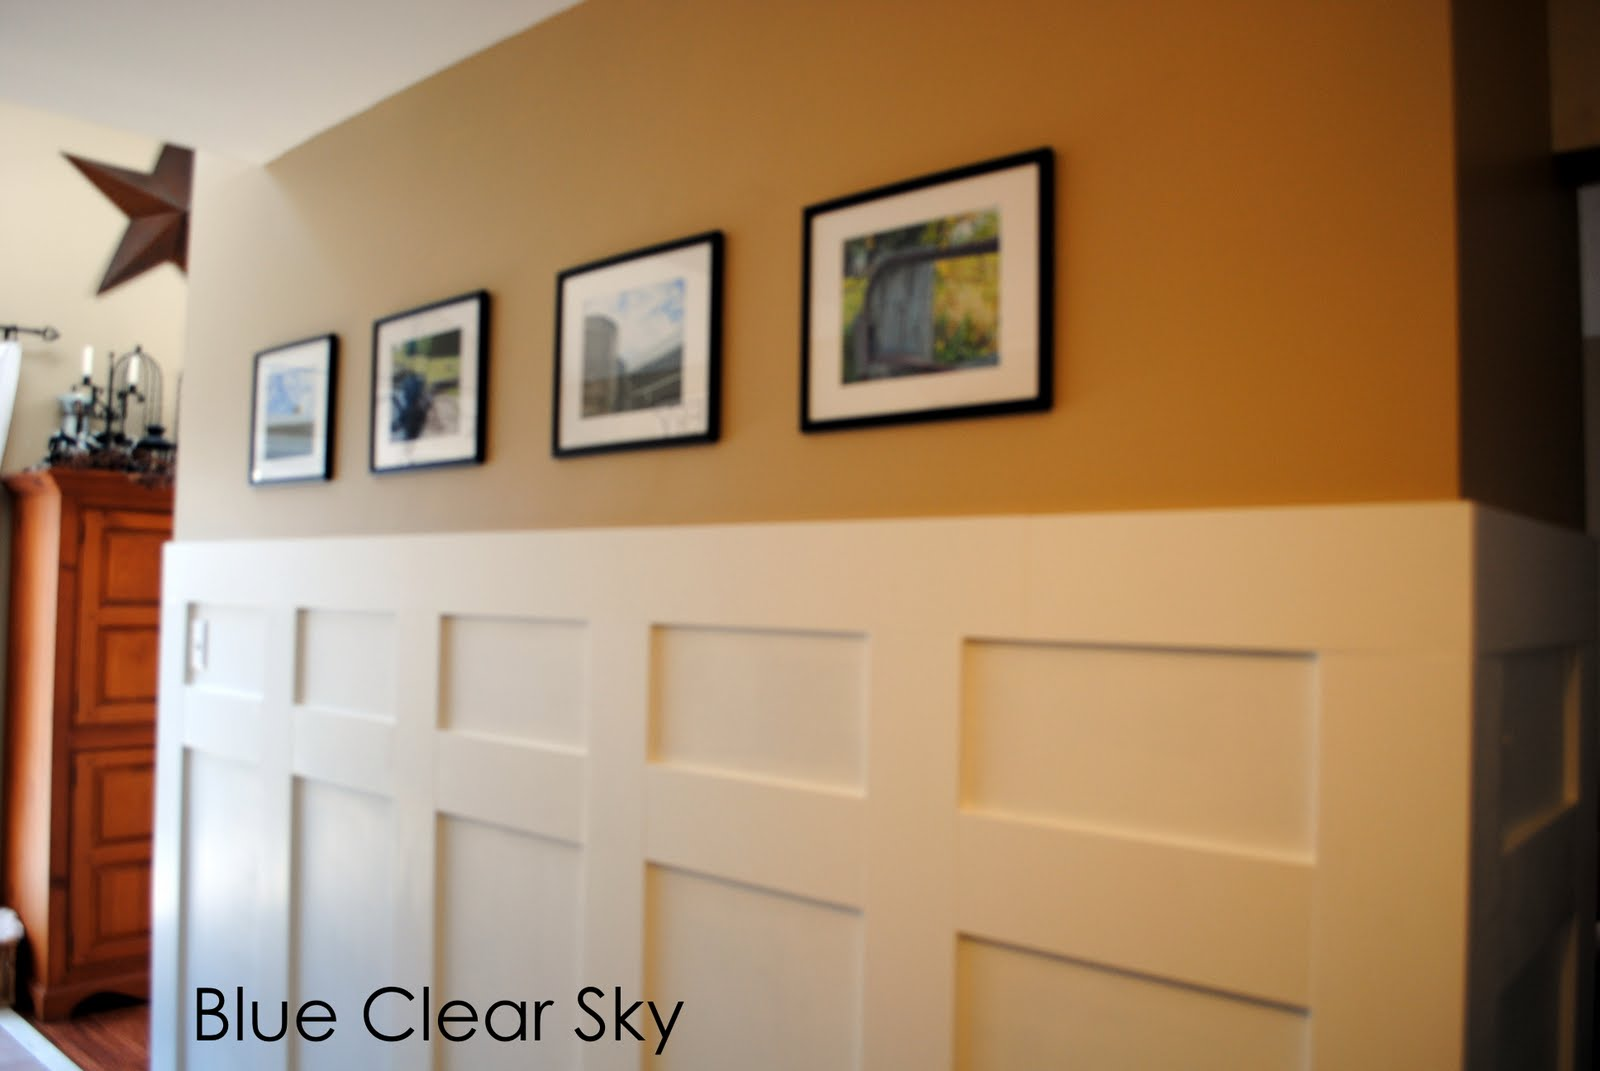 Stone house benjamin moore - I M Really Looking Forward To Your Opinions Thanks So Much